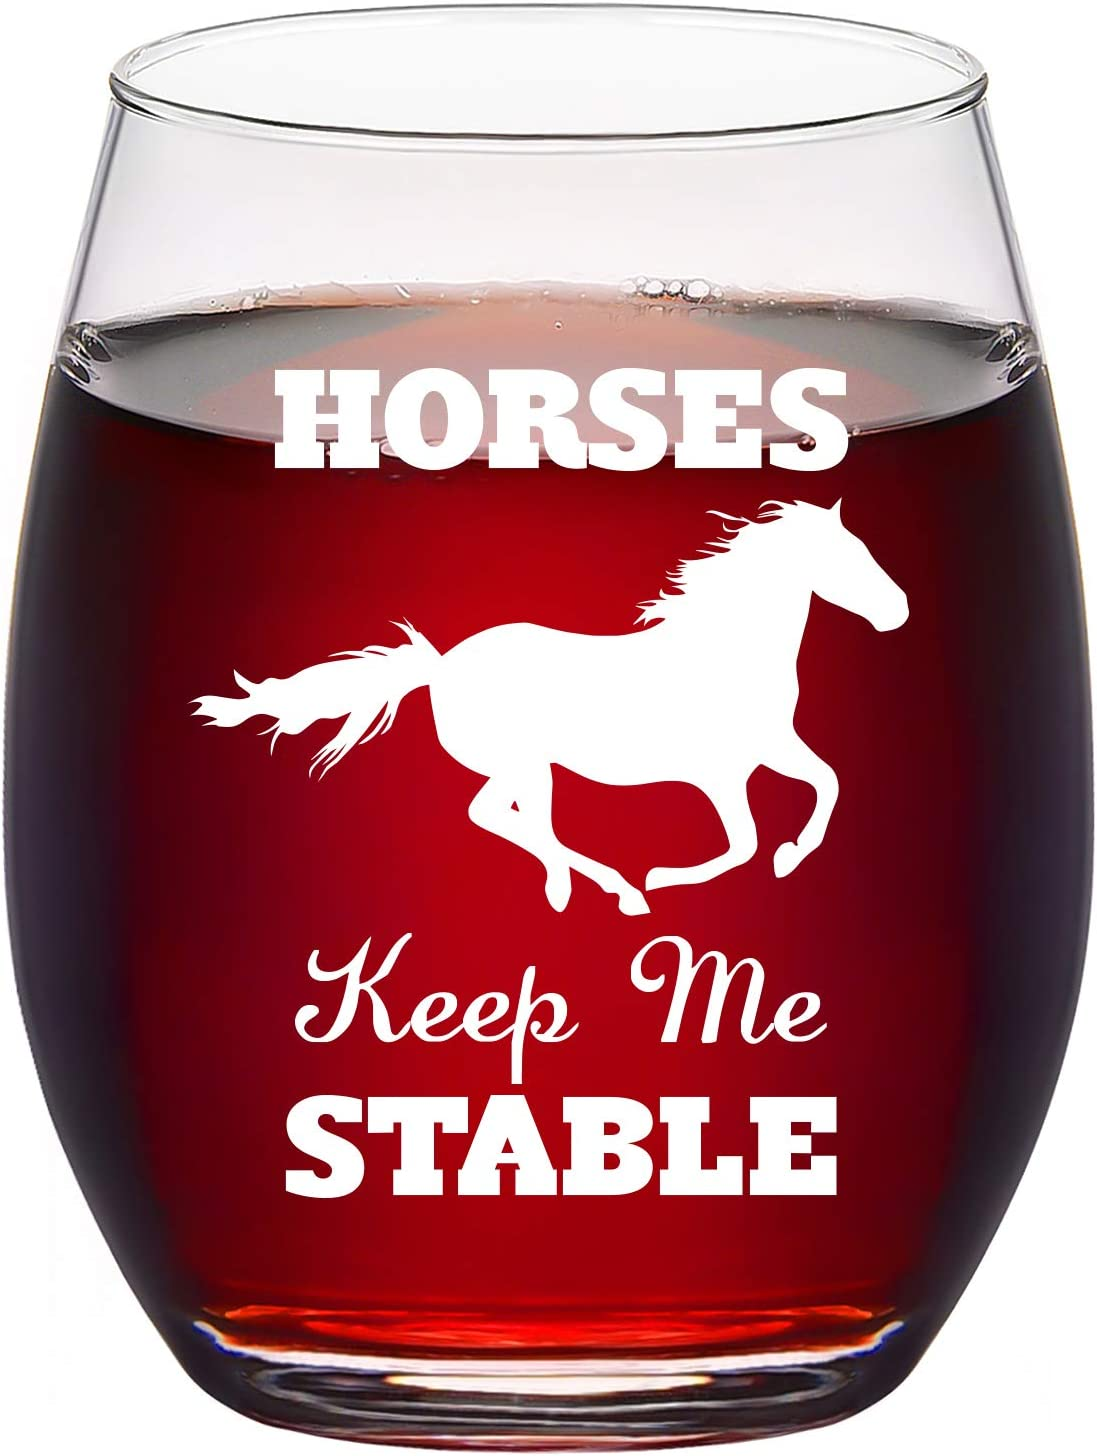 Horses Keep Me Stable Stemless Wine Glass, Funny Horse Gifts for Women Men Mom Dad Horse Lovers Cowgirls Equestrian Decor Christmas Birthday, 15 Oz